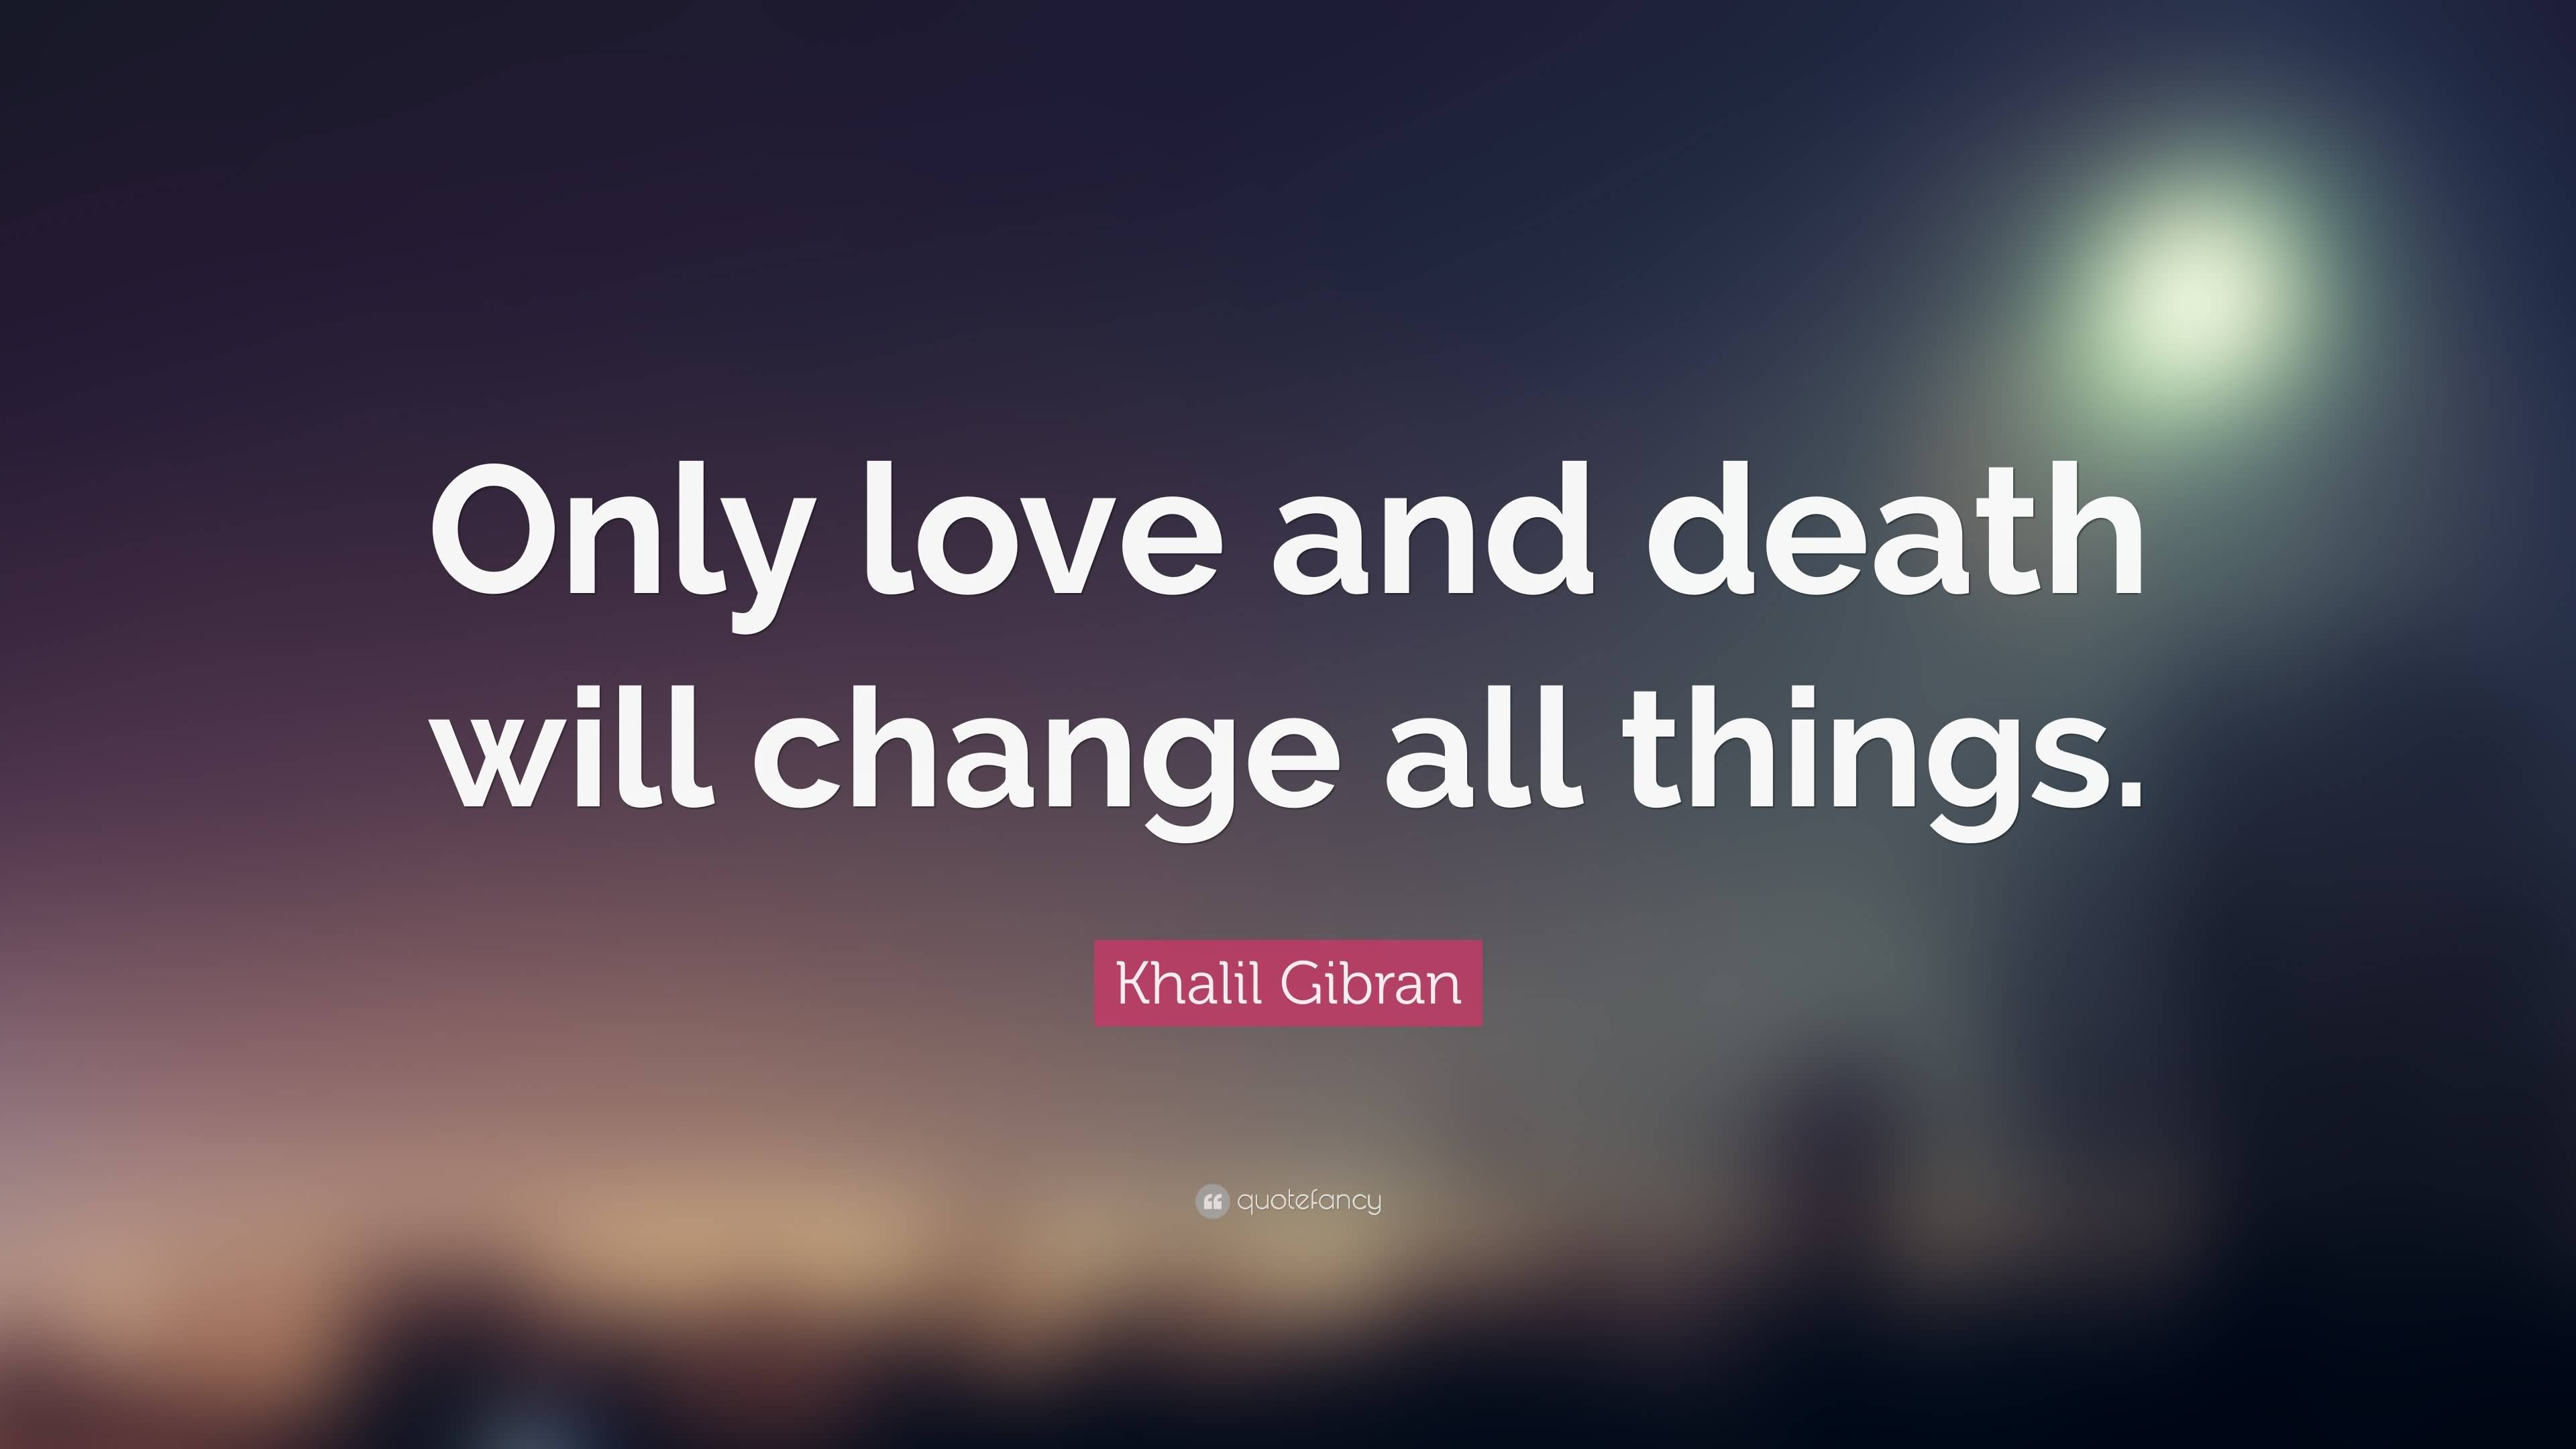 Quotes About Love And Death 03